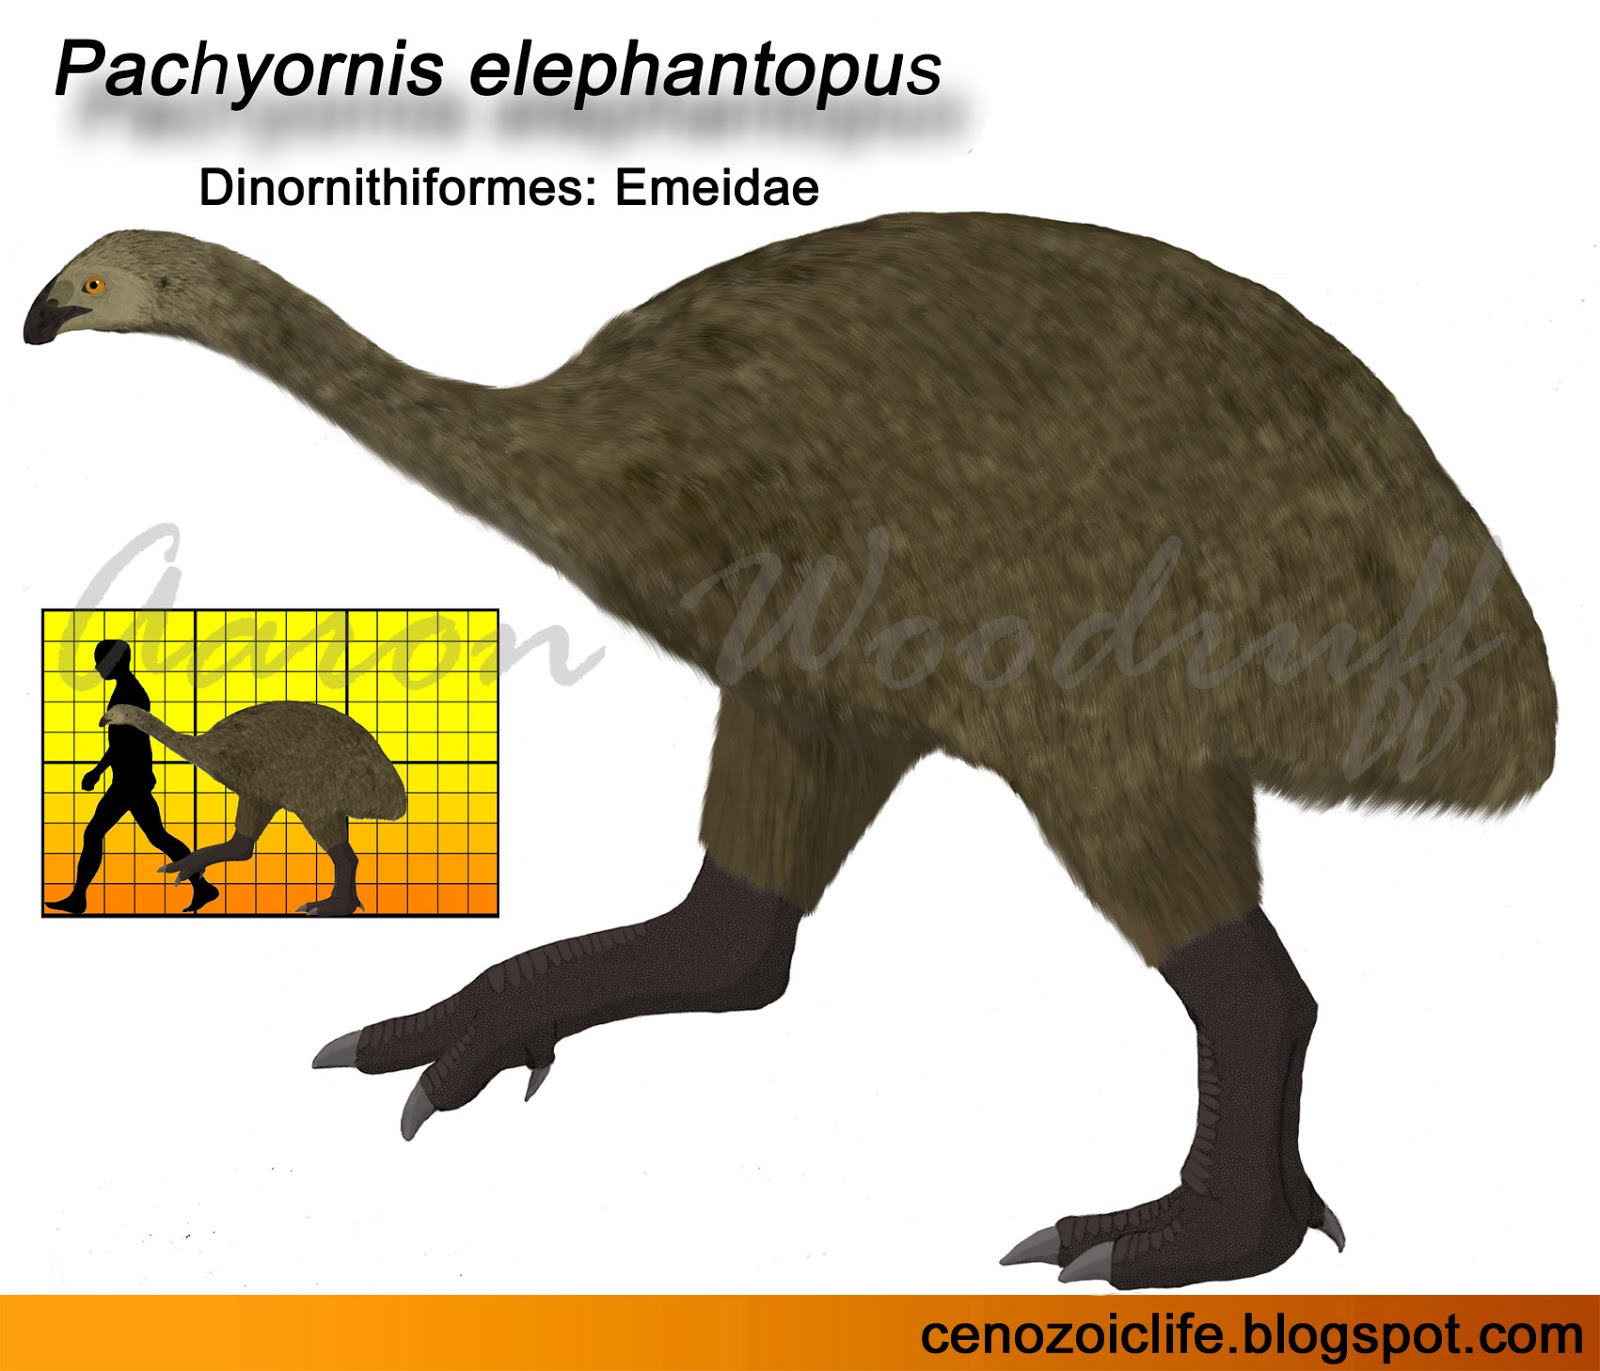 Life in the cenozoic era 2017 physical attributes pooptronica